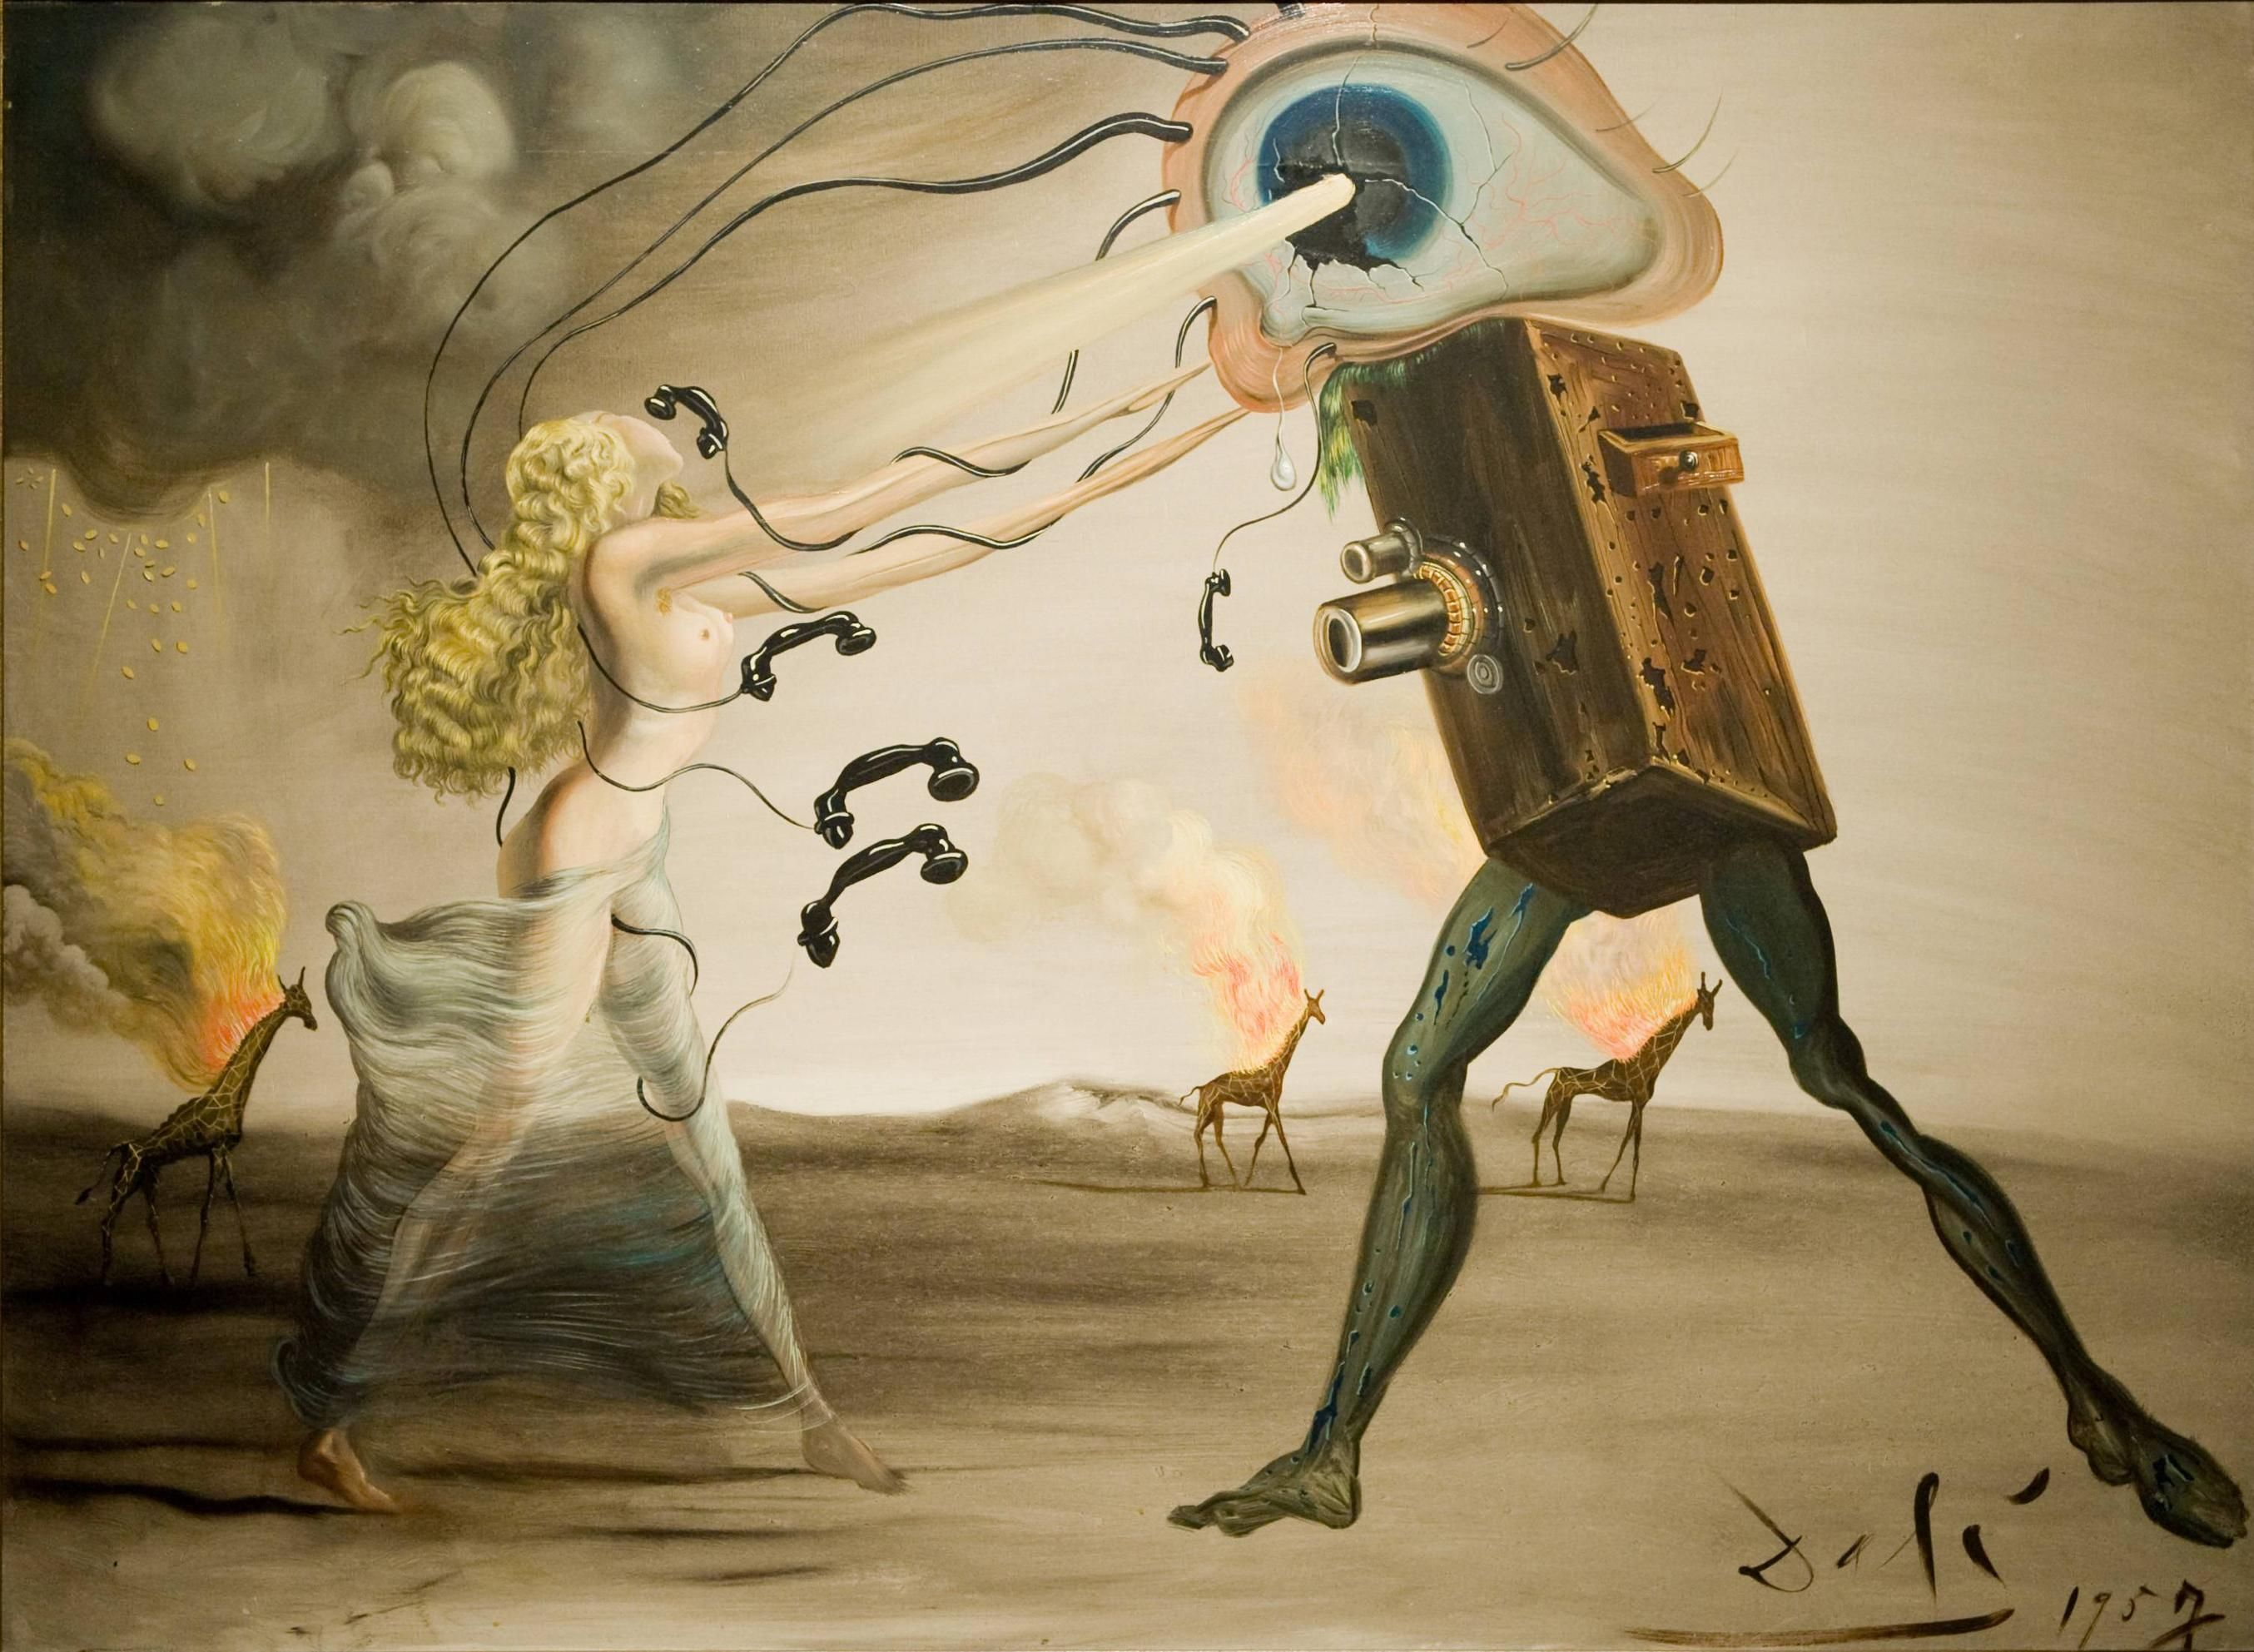 Surrealist painting by salvador dali burning giraffes and telephones